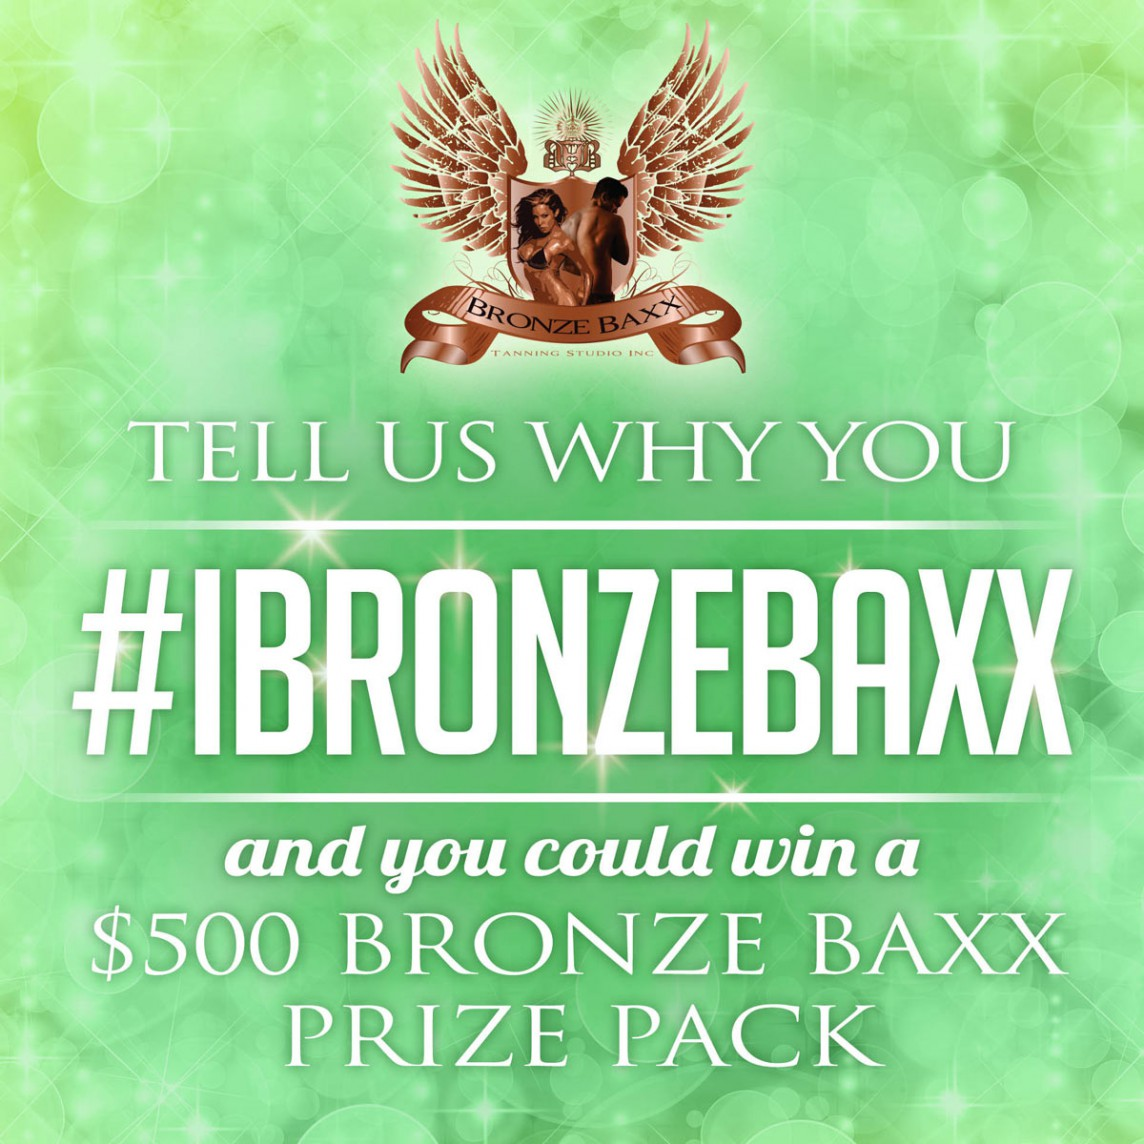 Win A 500 Bronze Baxx Tanning Studios Prize Pack